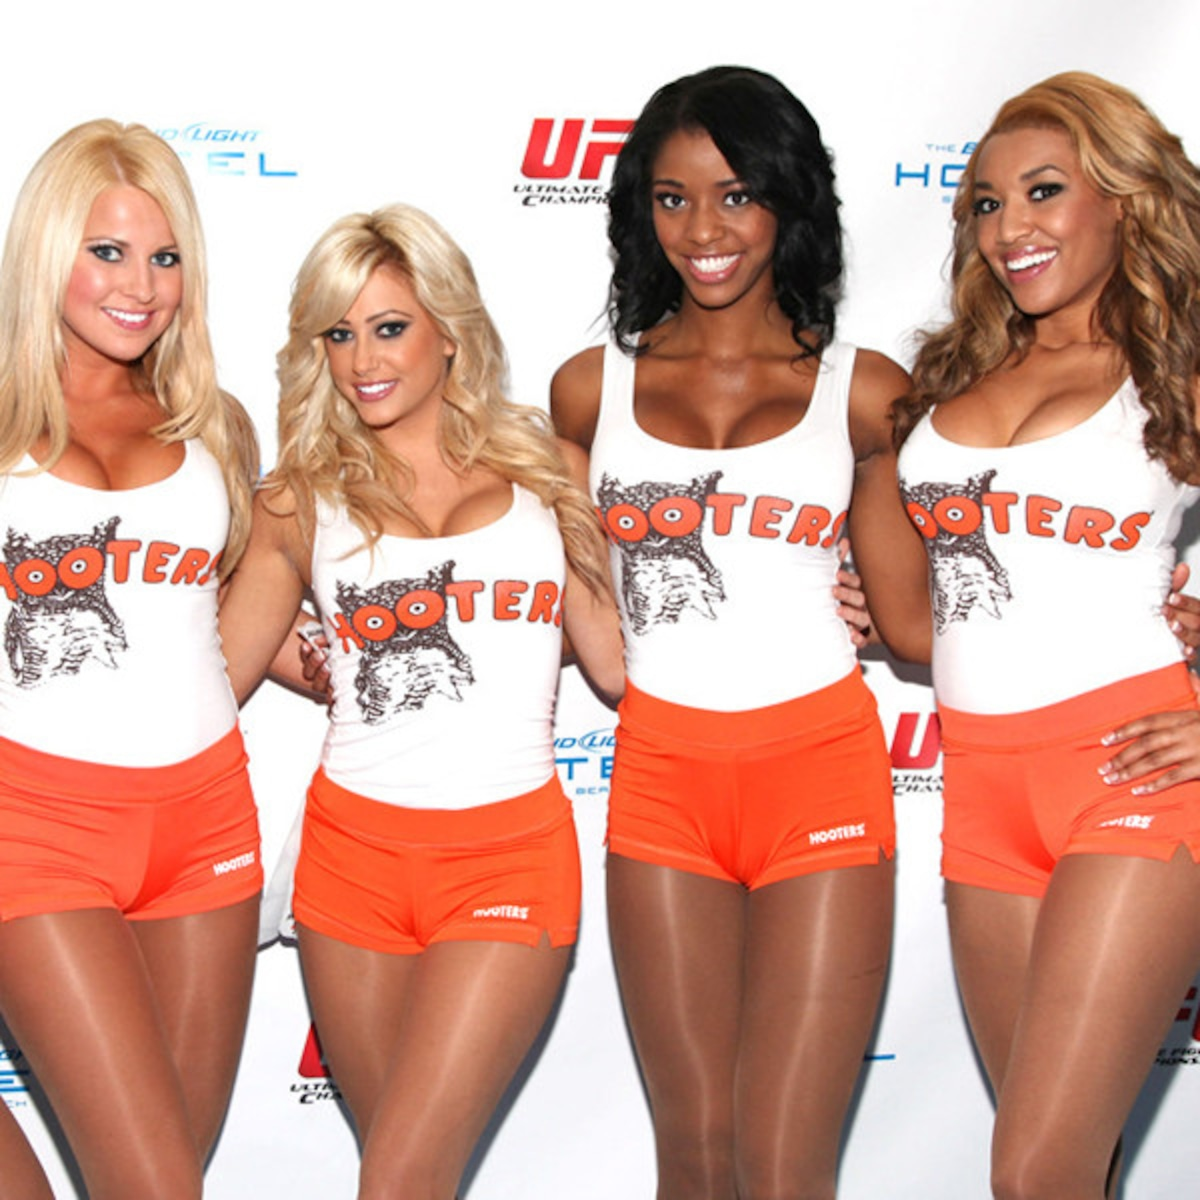 rs 600x600 131004114532 600.Hooters Staff.jl.100413 - How To Get A Job At Hooters With No Experience